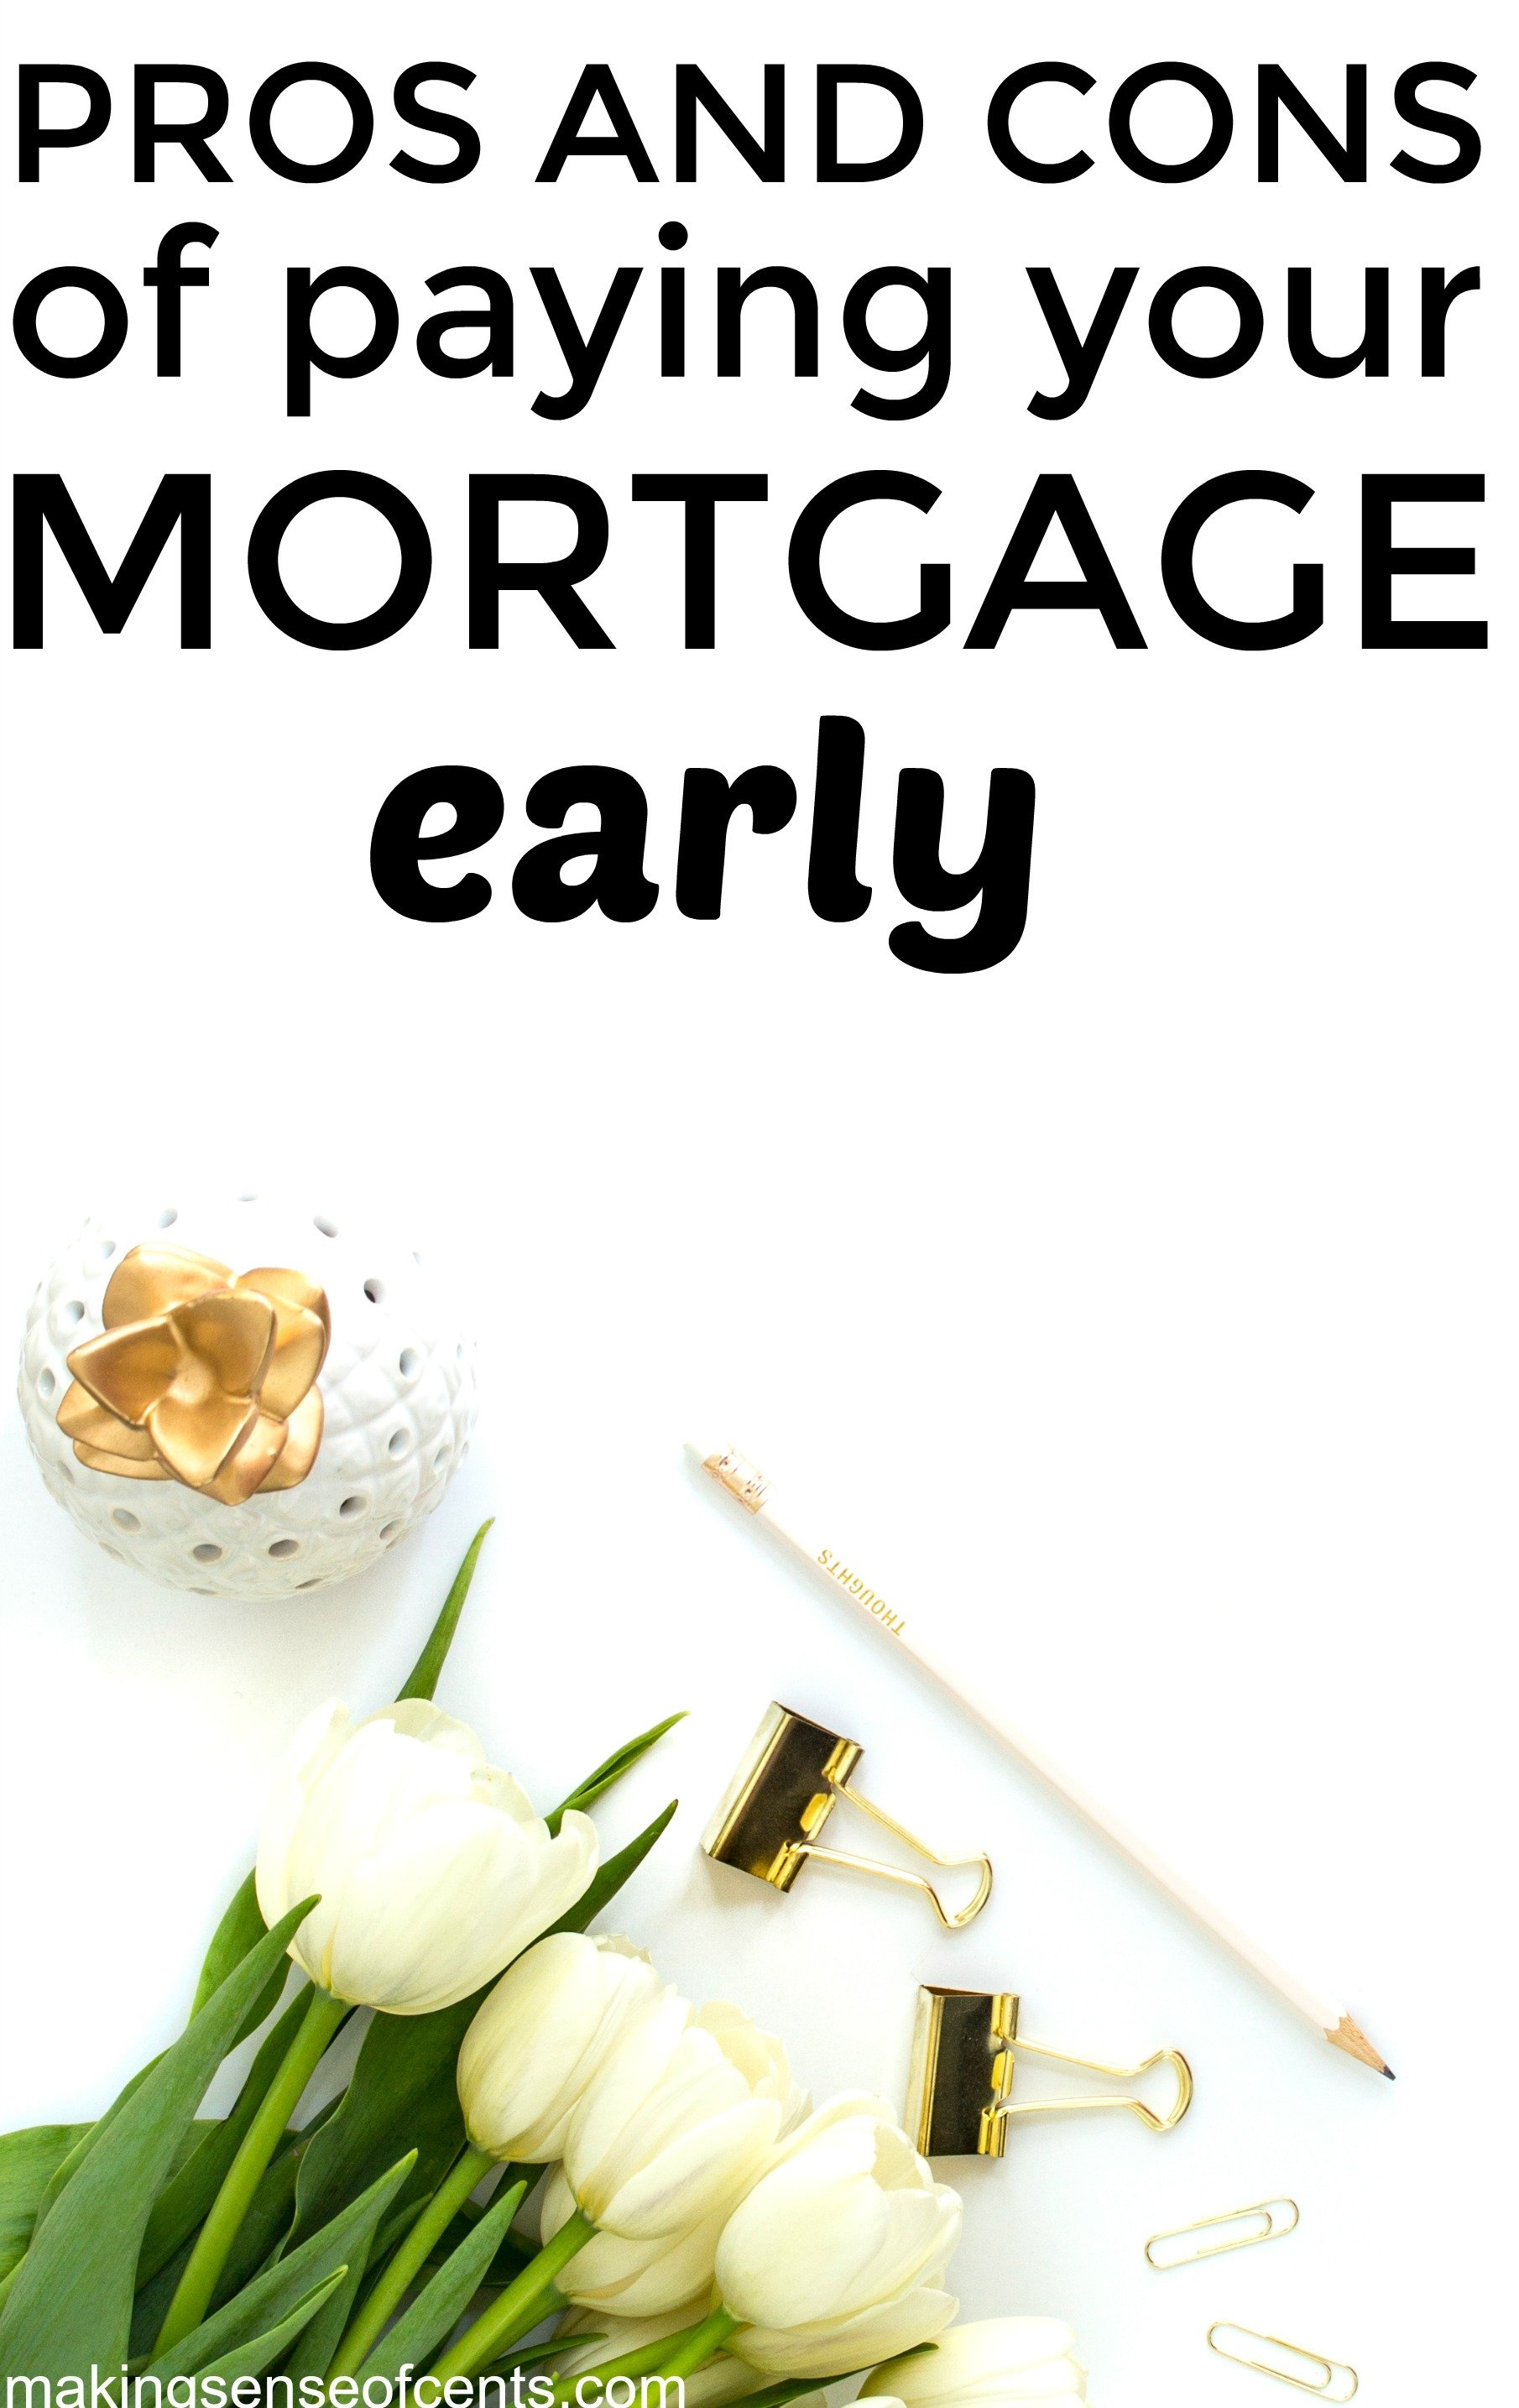 Find out the pros and cons of paying your mortgage off early. This is a helpful list!